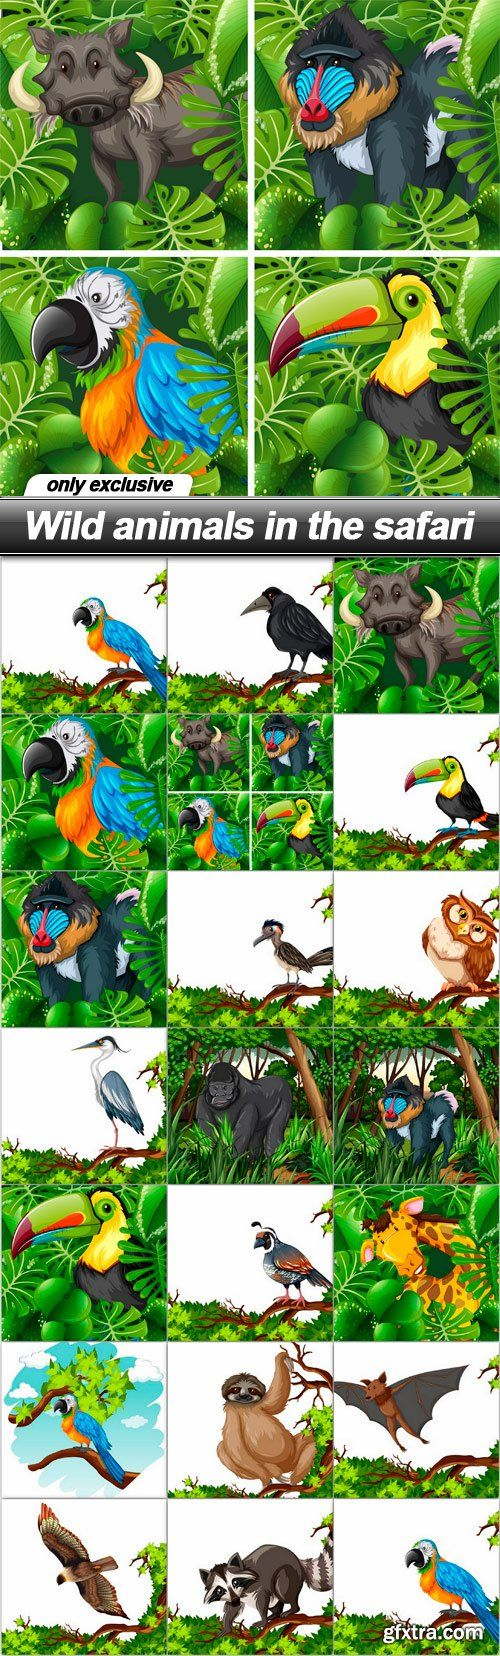 Wild animals in the safari - 20 EPS